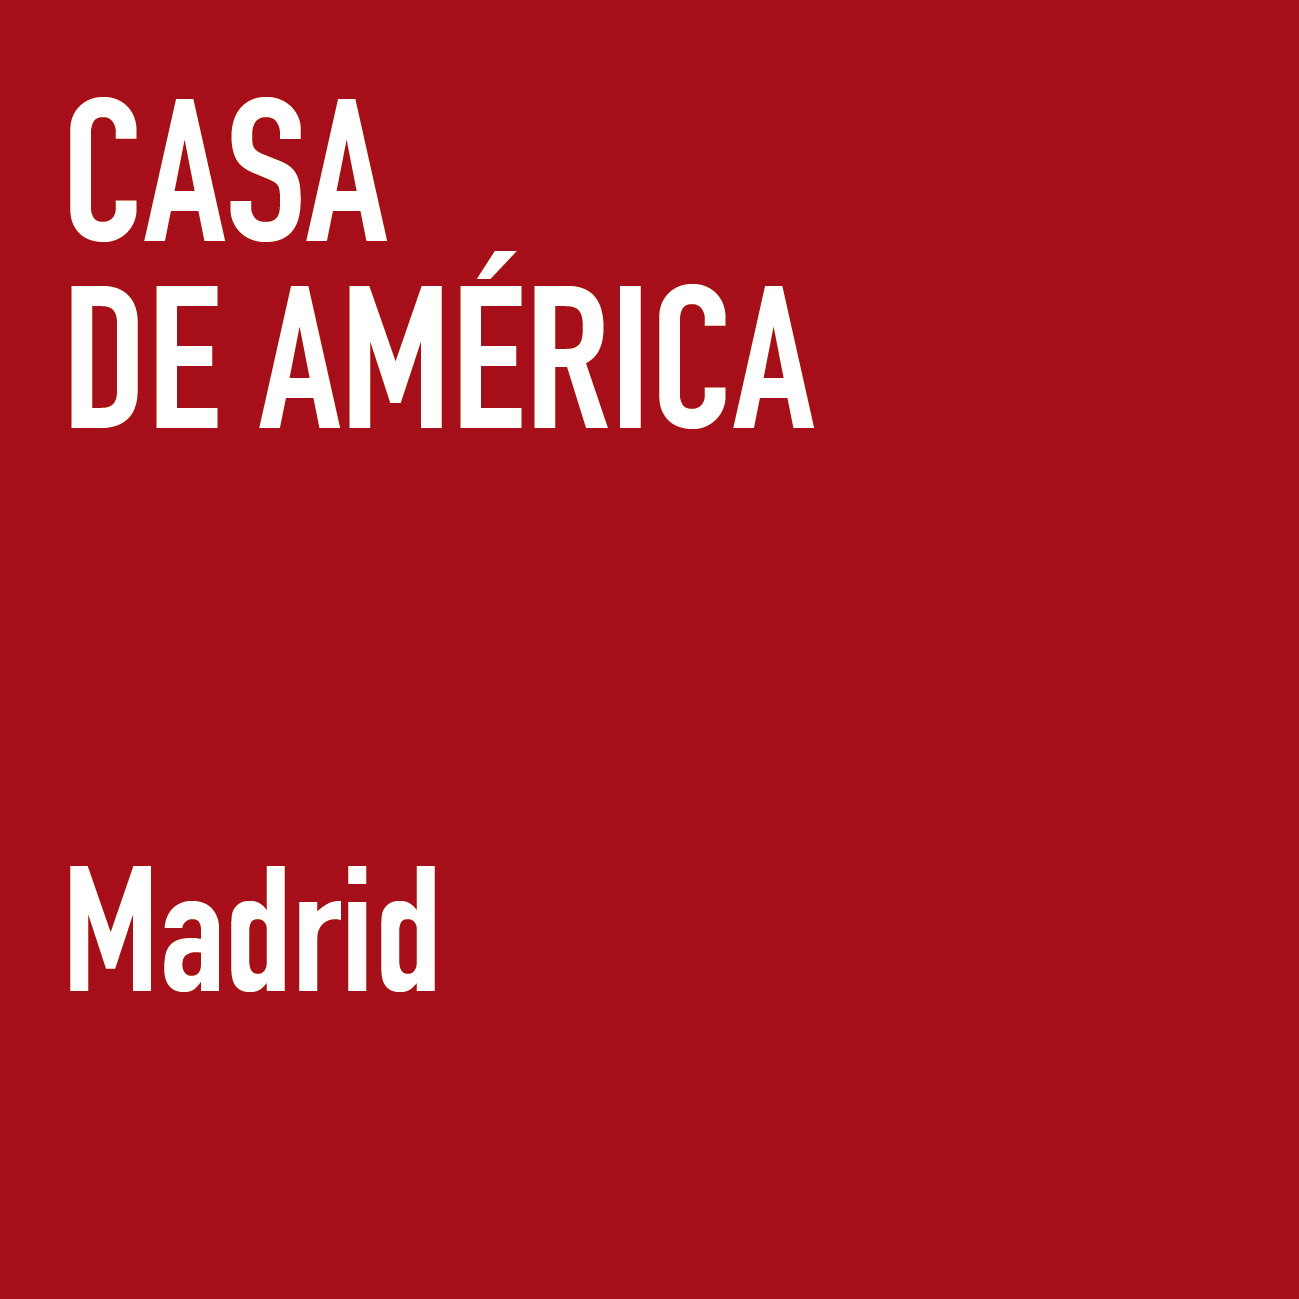 PLACES CASA DE AMERICA MADRID